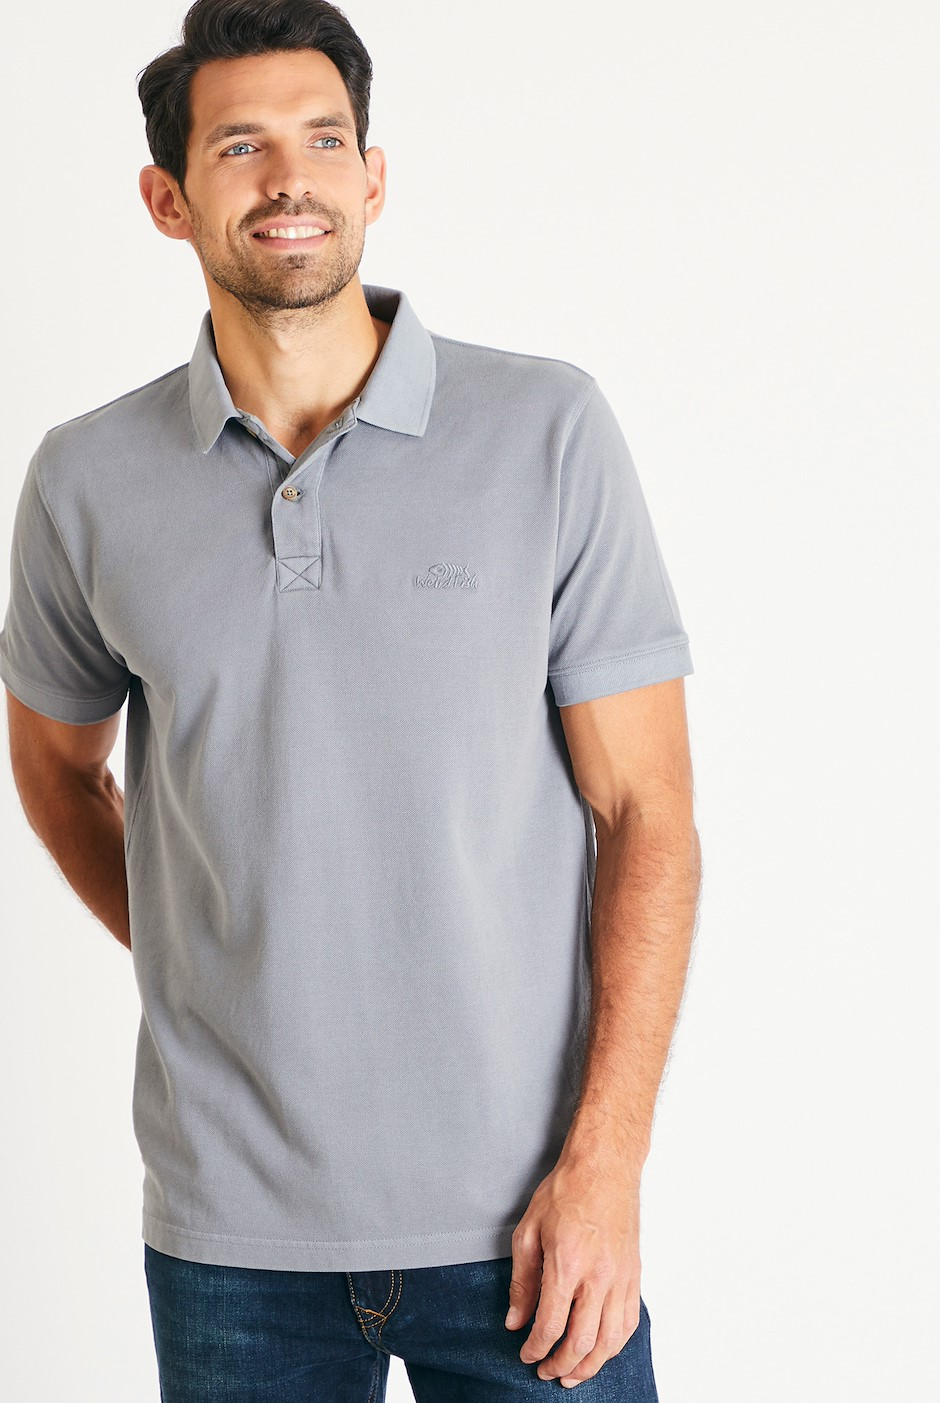 Lenny Plain Cotton Polo Shirt Gunmetal